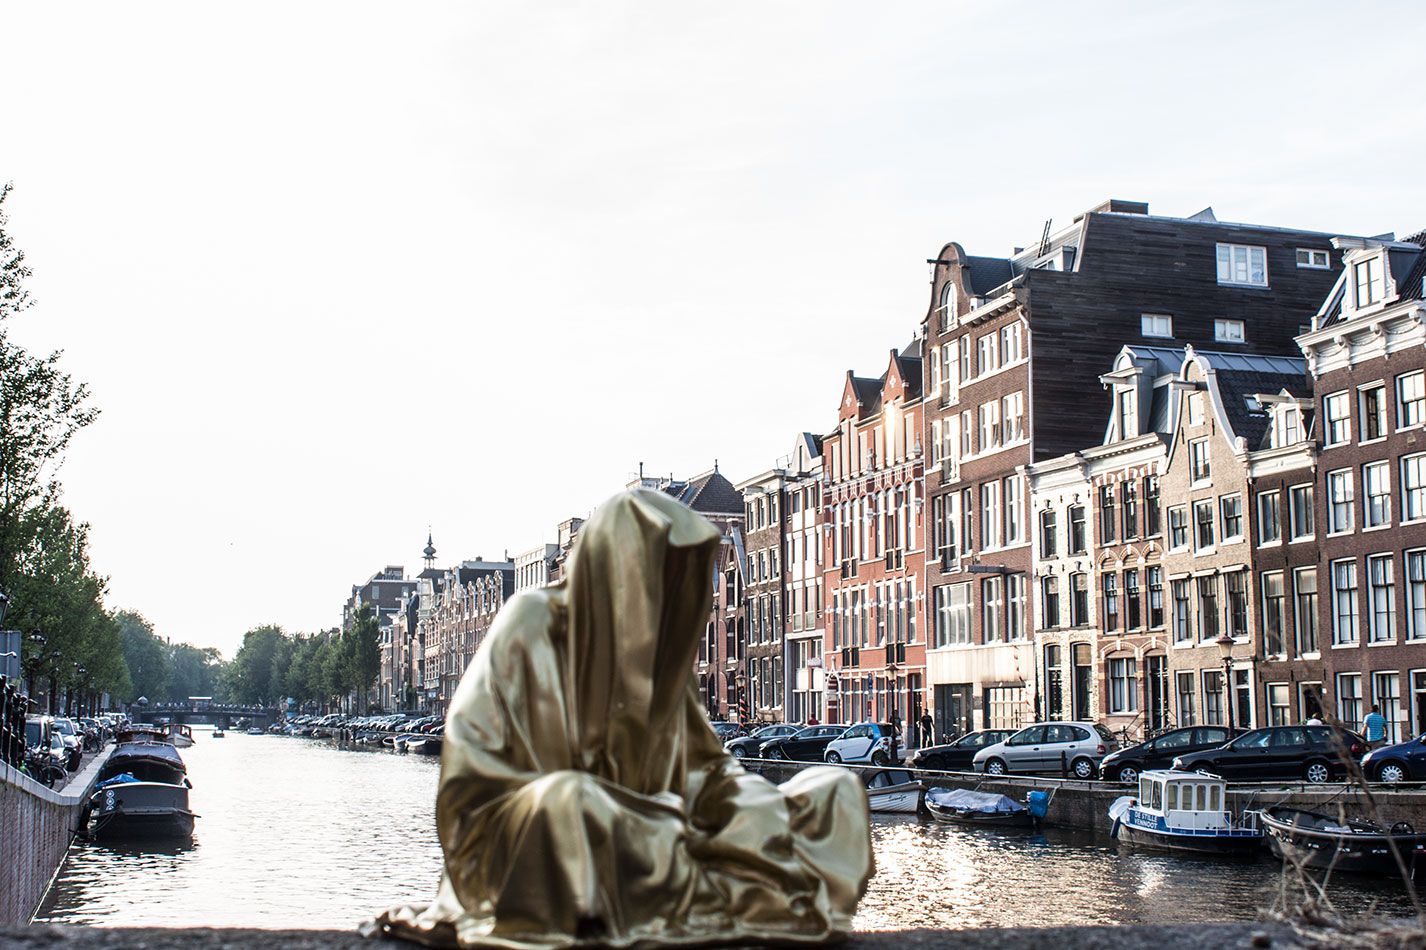 amstadam-netherlands-guardians-of-time-manfred-kielnhofer-public-modern-contemporary-art-fine-arts-sculpture-design-streat-art-2090